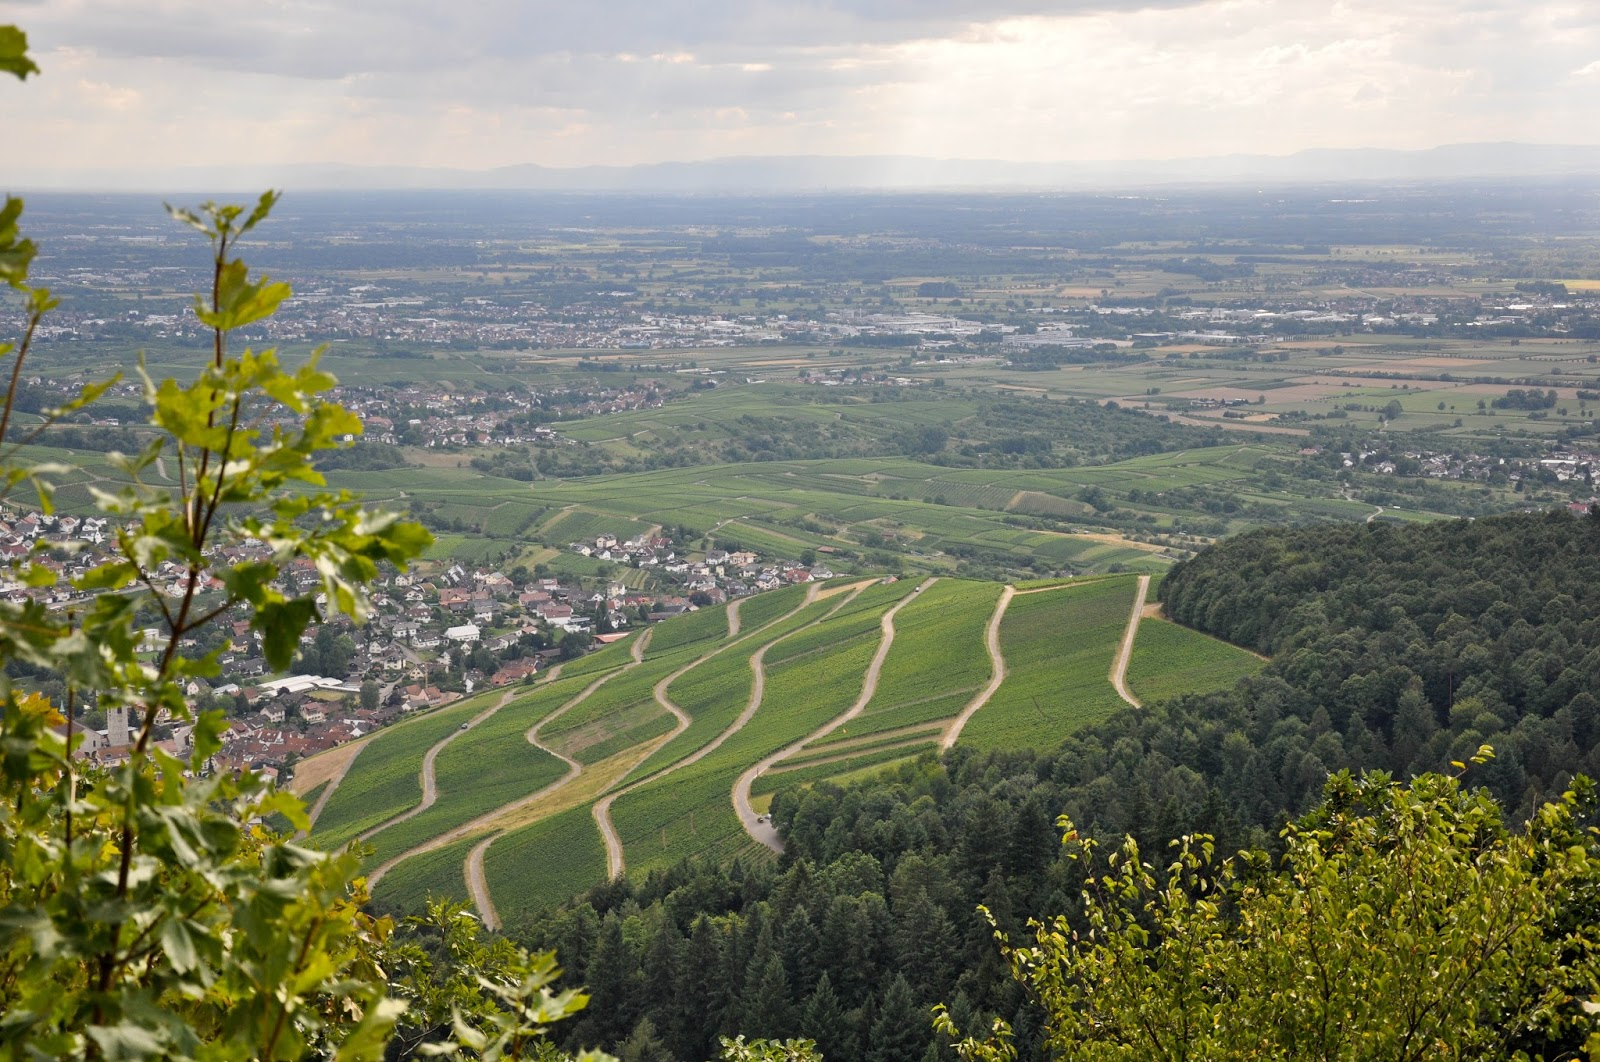 The Rhine Valley seen from the Yburg Castle, Yburg, Germany